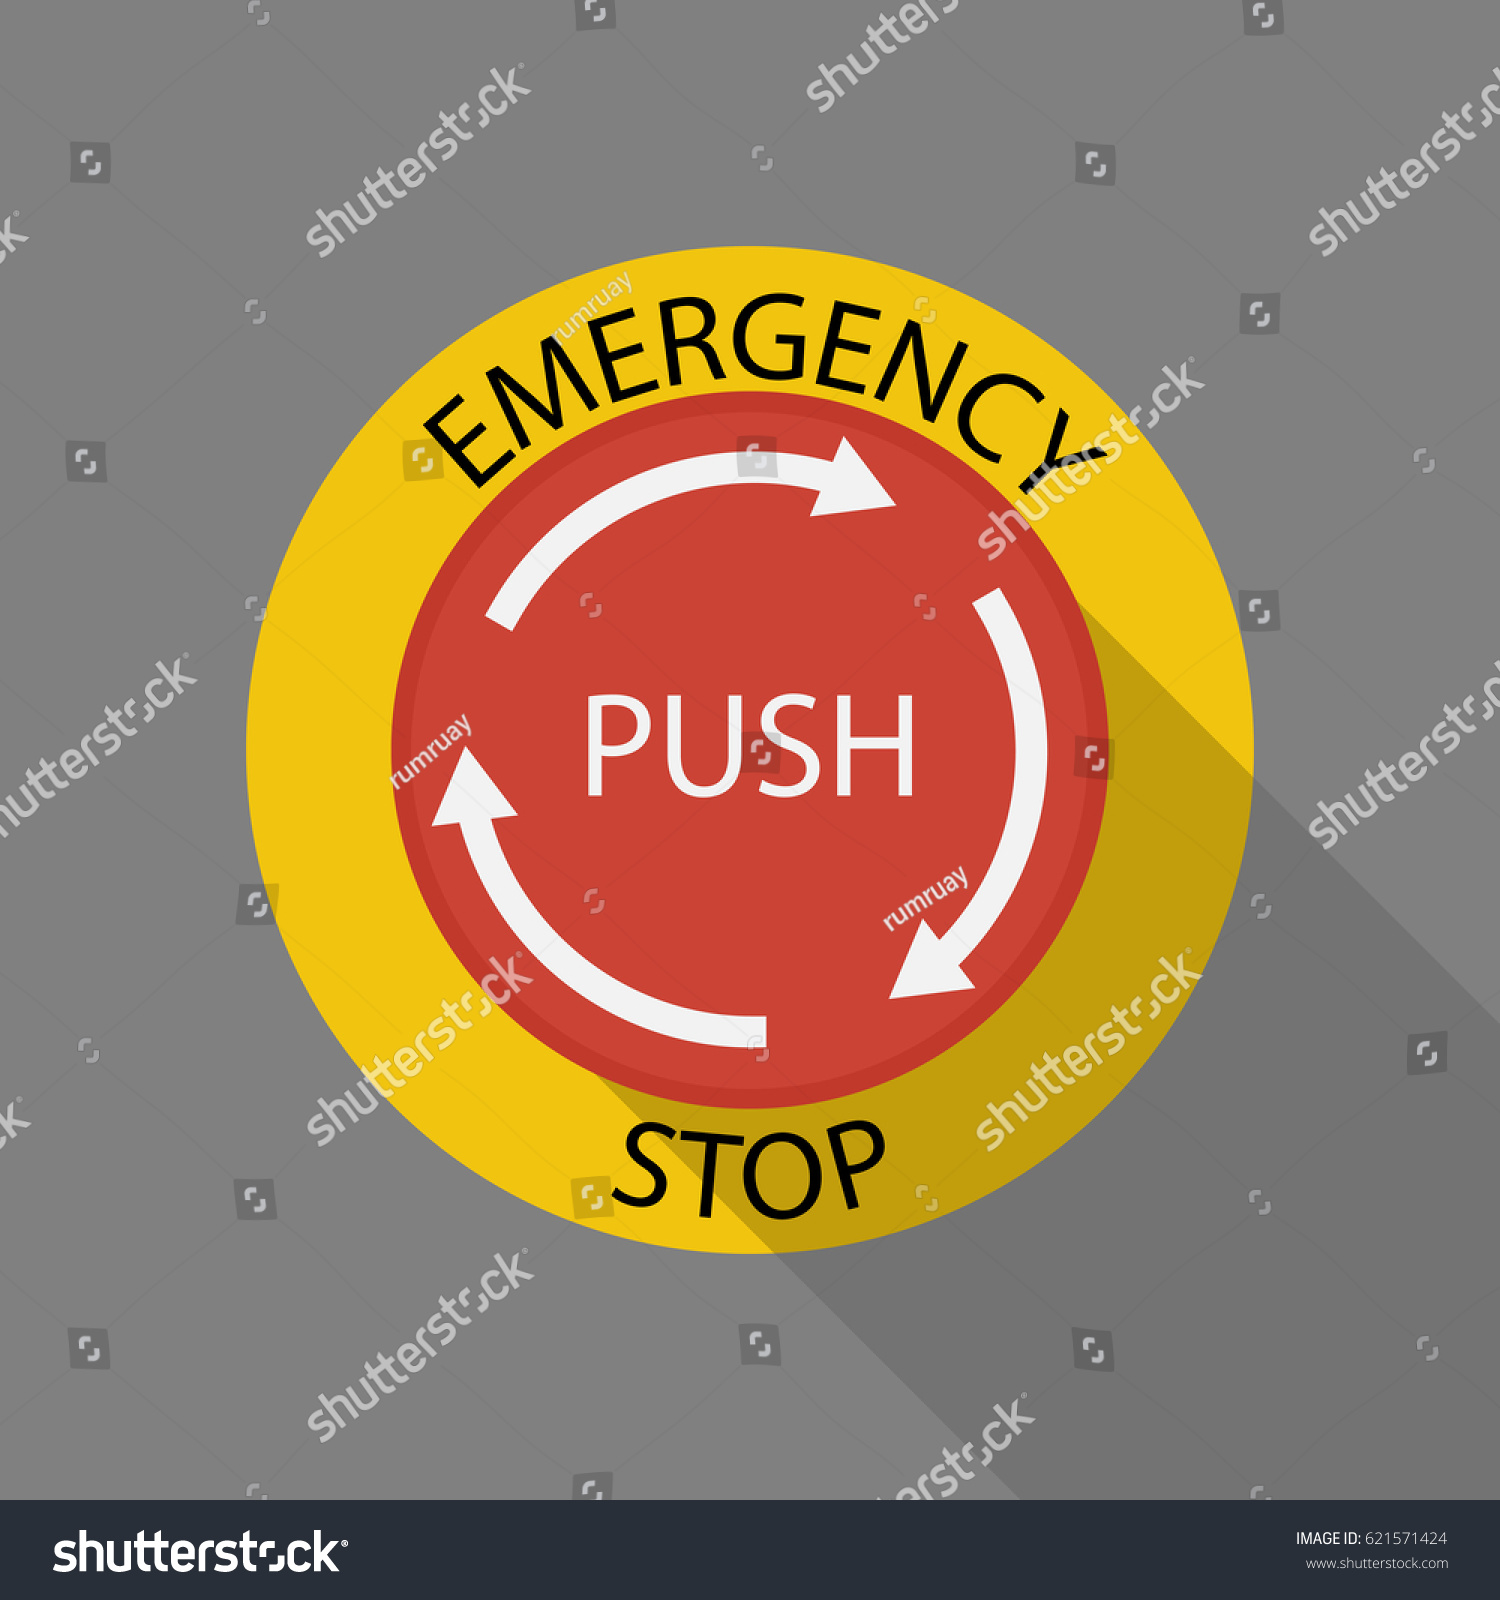 Emergency stop icon clipart emergency off - Emergency Stop Button